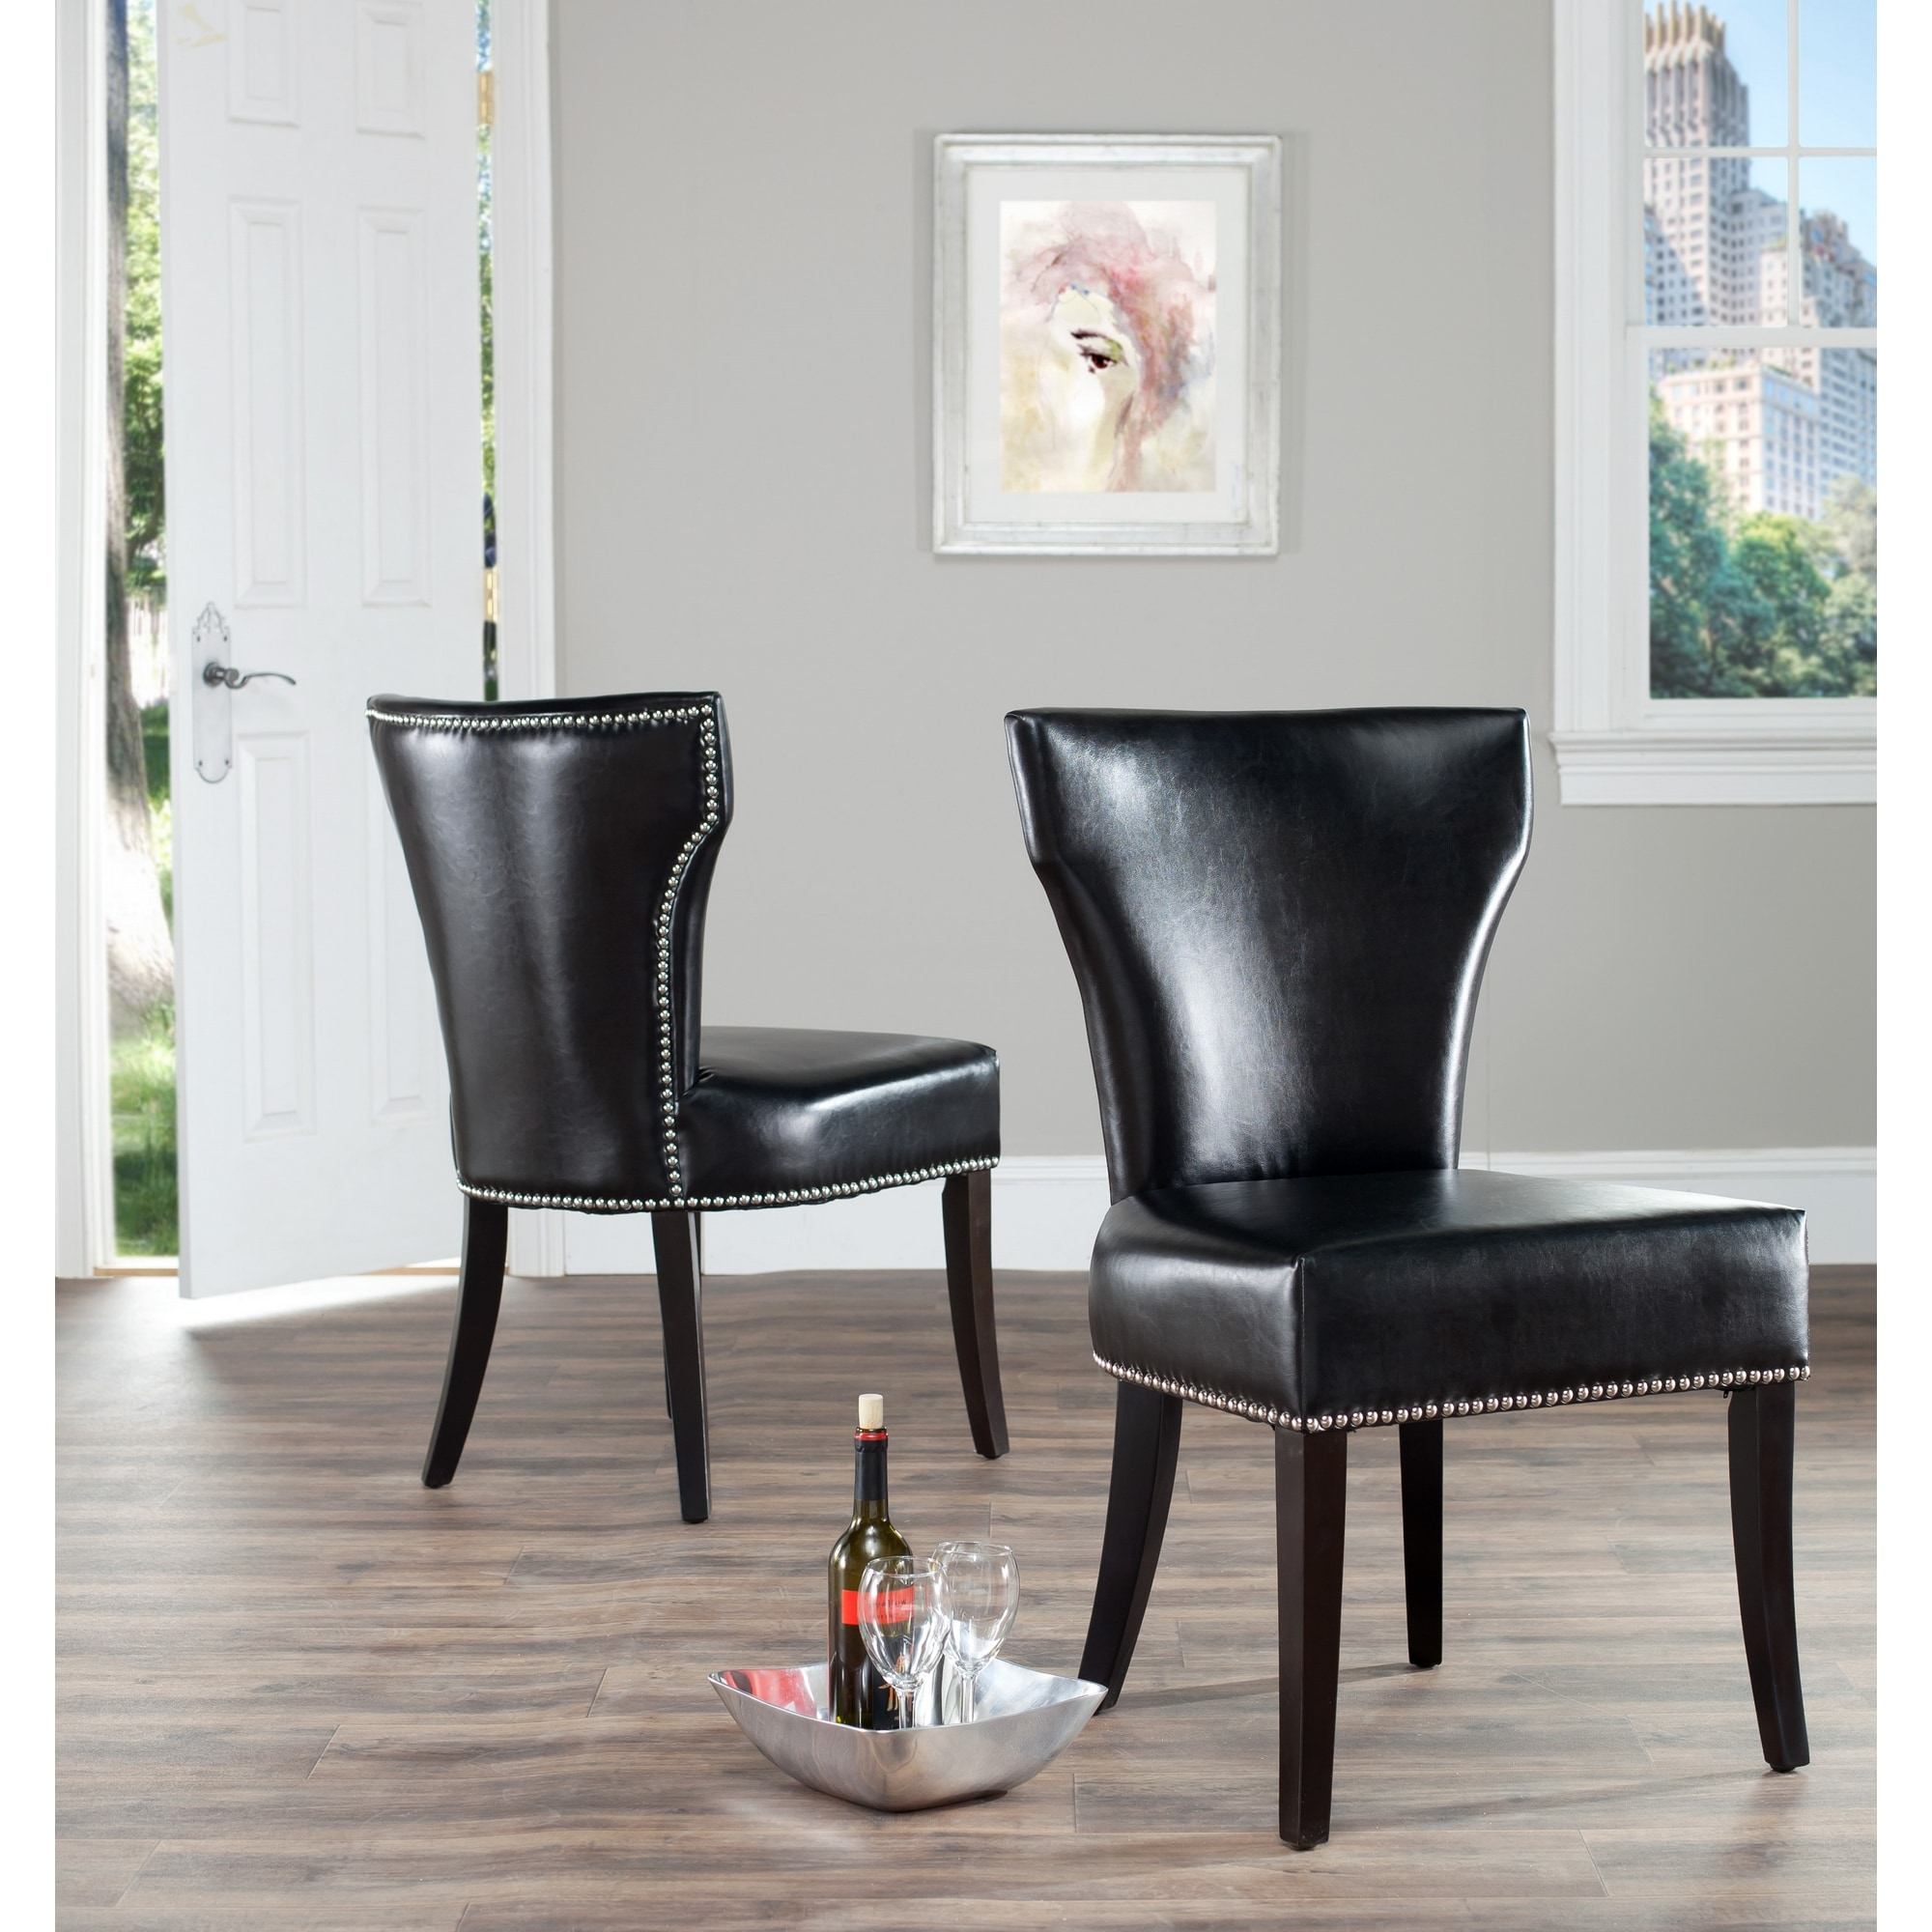 Black Dining Room Chair: Safavieh Matty Black Leather Nailhead Dining Chairs (Set